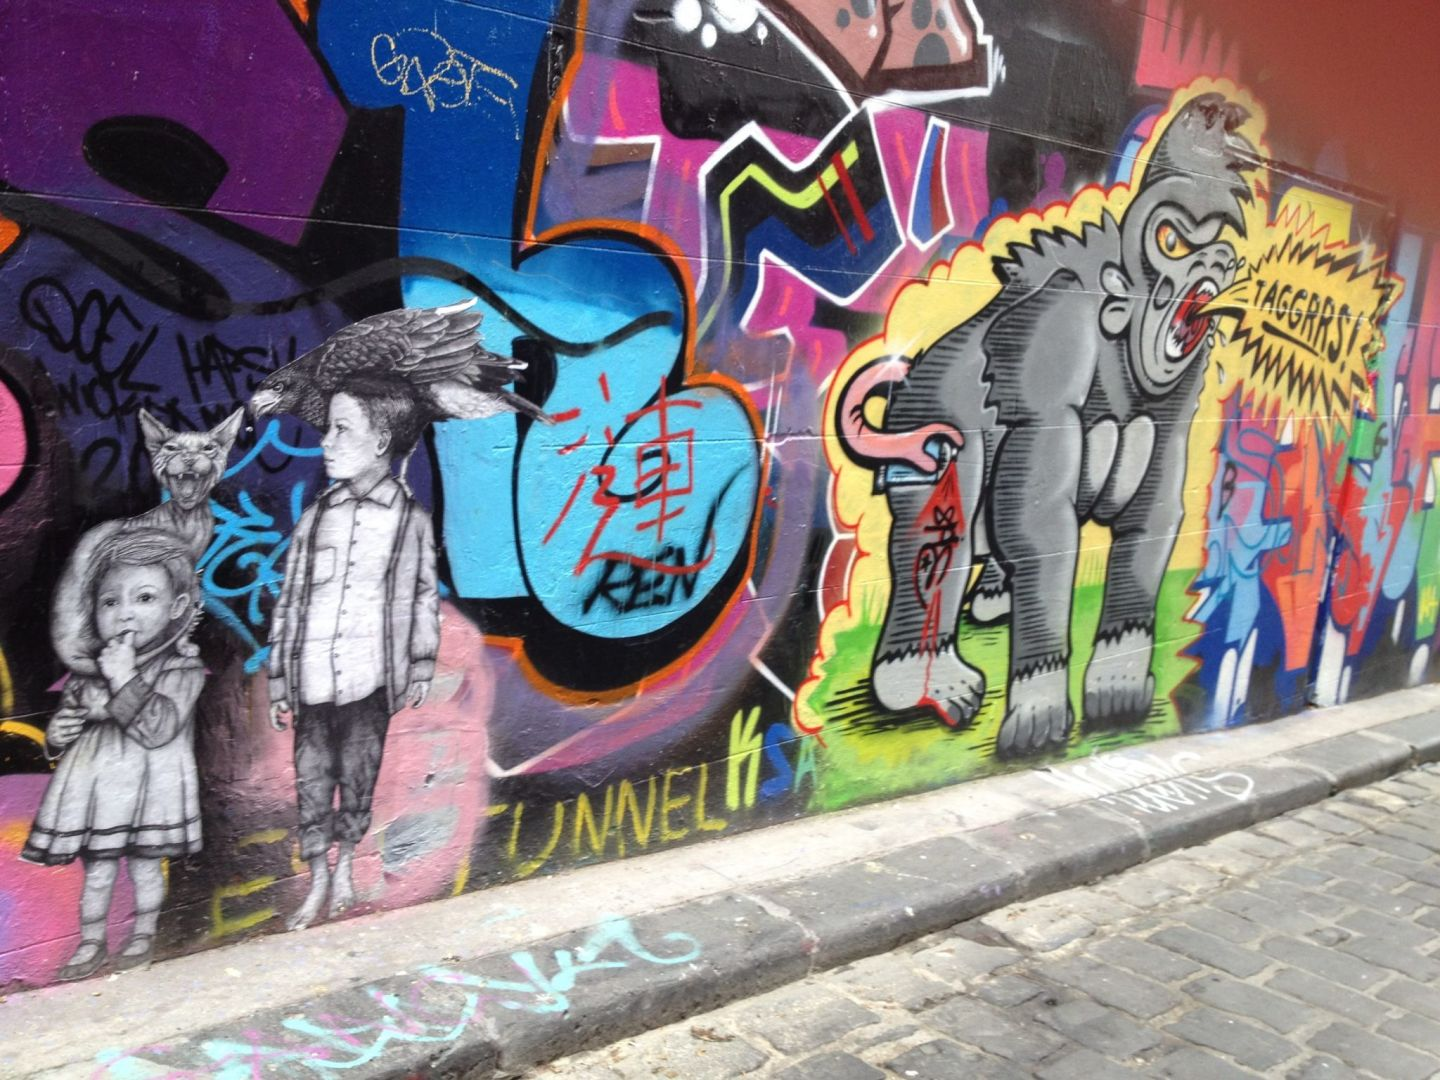 Hosier Lane and its street art